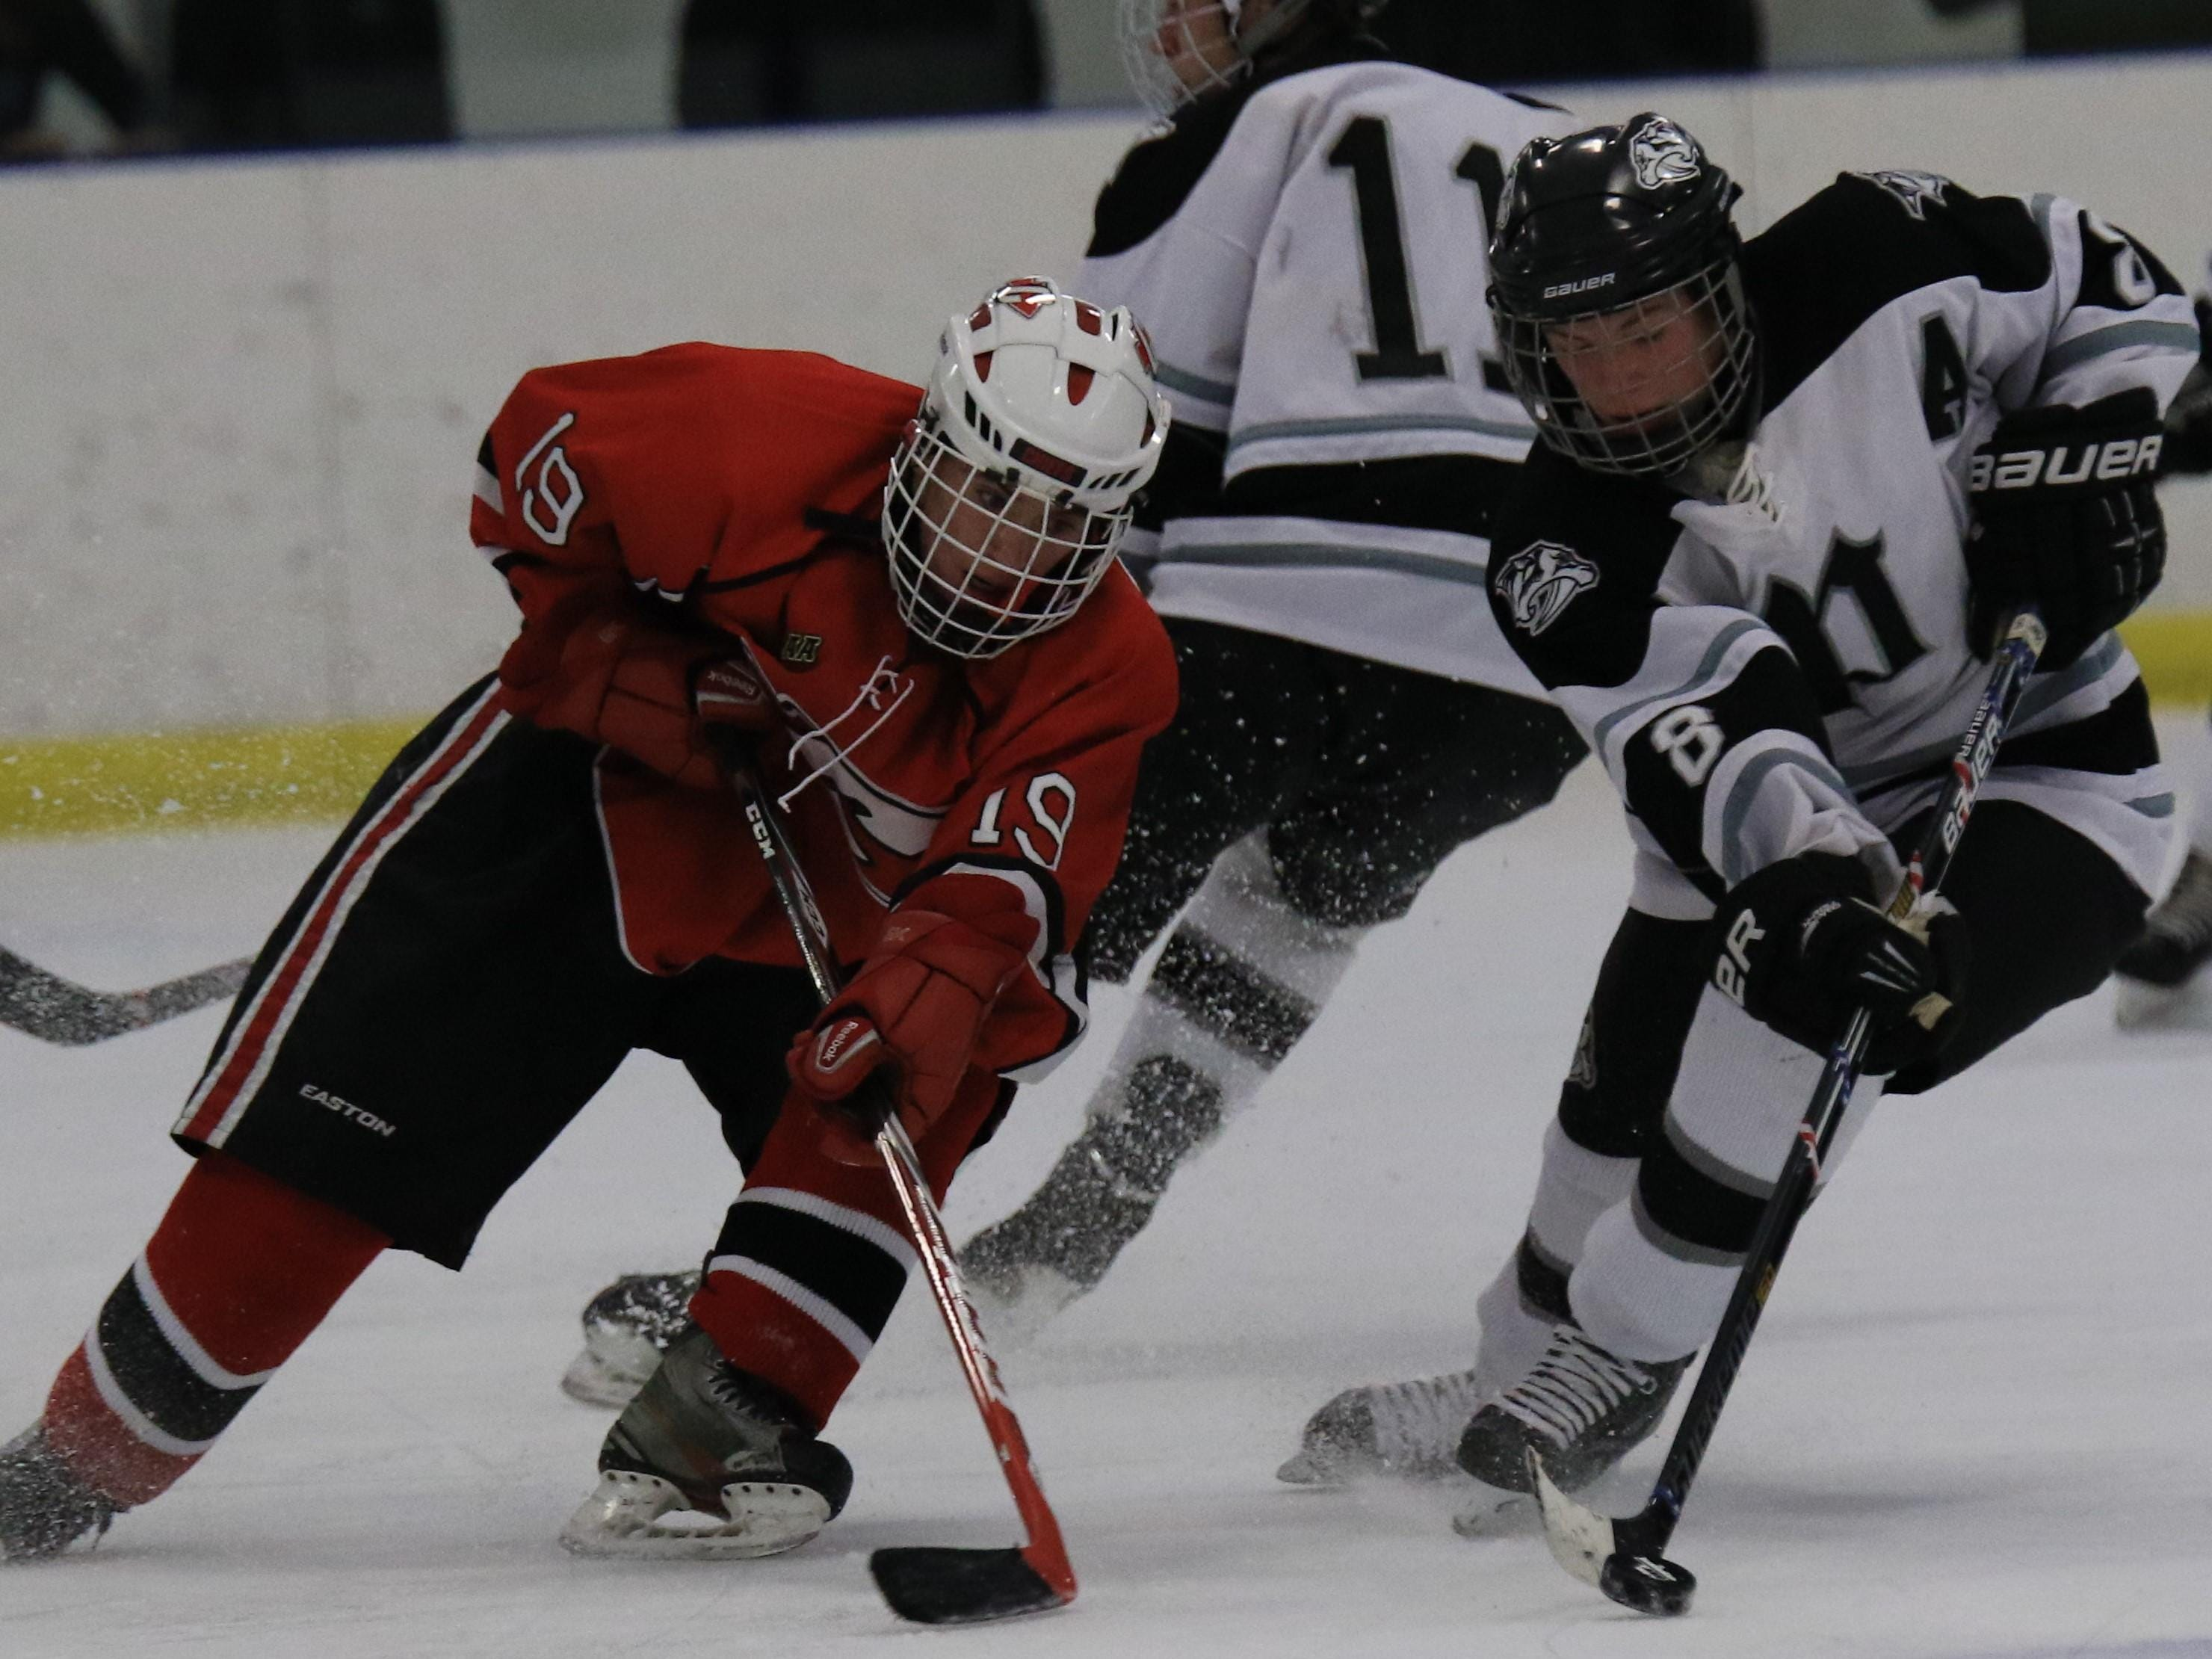 In pursuit of the puck are Canton's Matthew Eastman (No. 19) and Plymouth's Ricky Covault (No. 8).